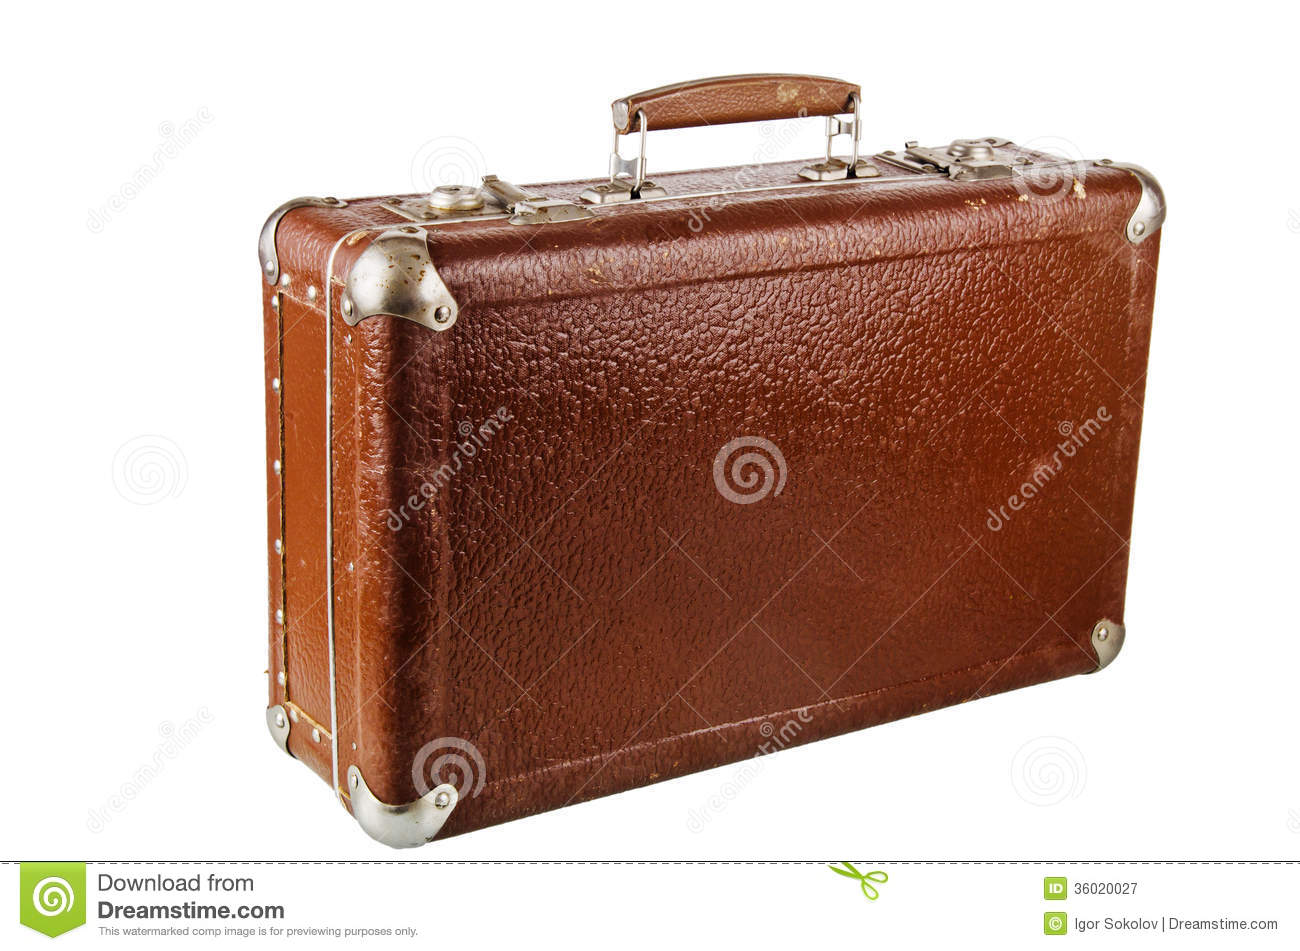 Old cardboard suitcase isolated royalty free stock photography image 3602 - Valise en carton vintage ...